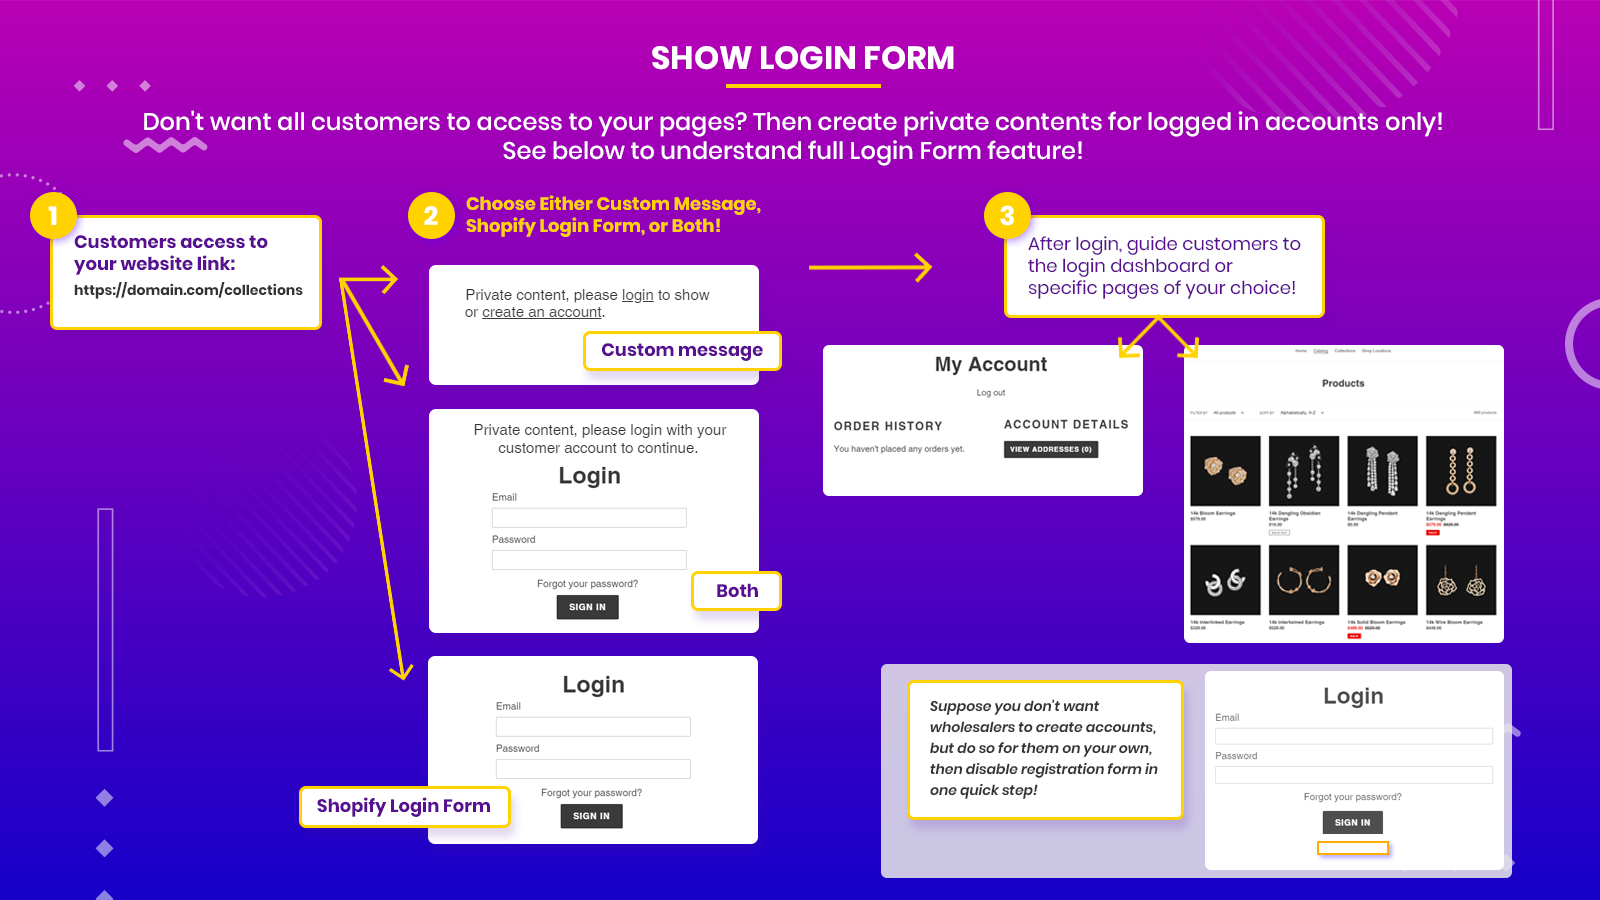 Allow logged in members only with Show Login Form features!